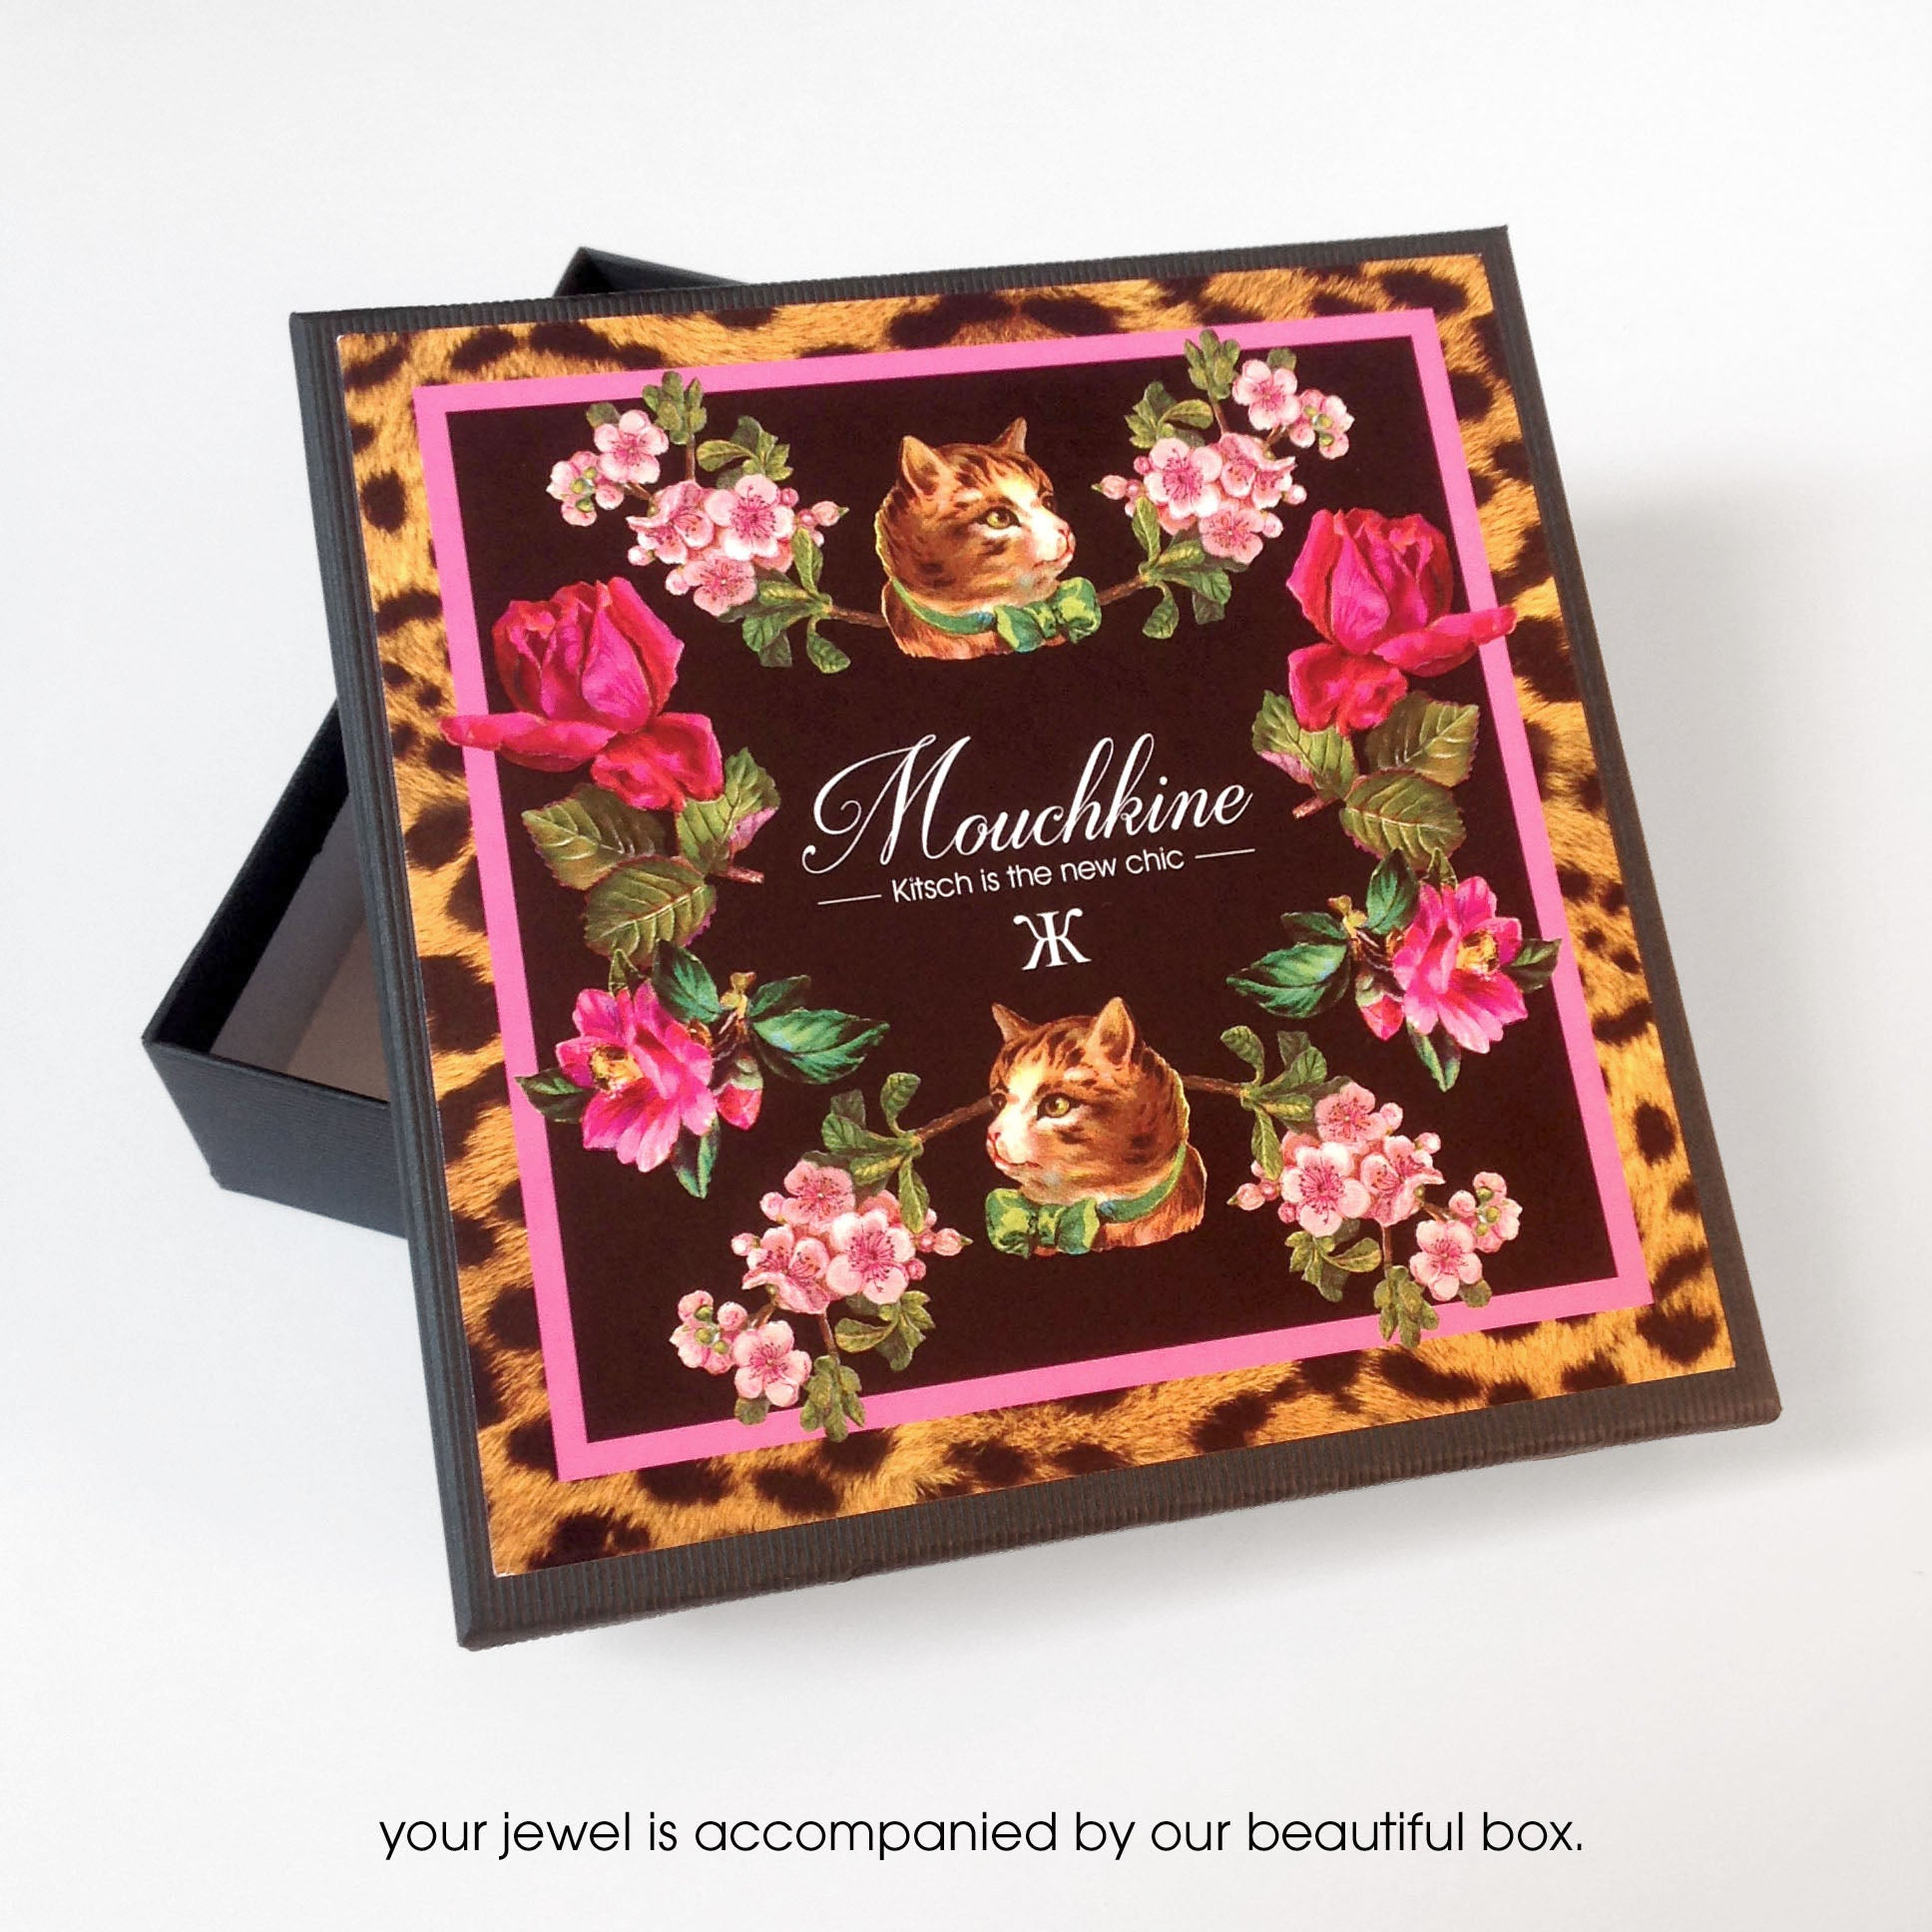 mouchkine jewelry chic and elegant luxury packaging